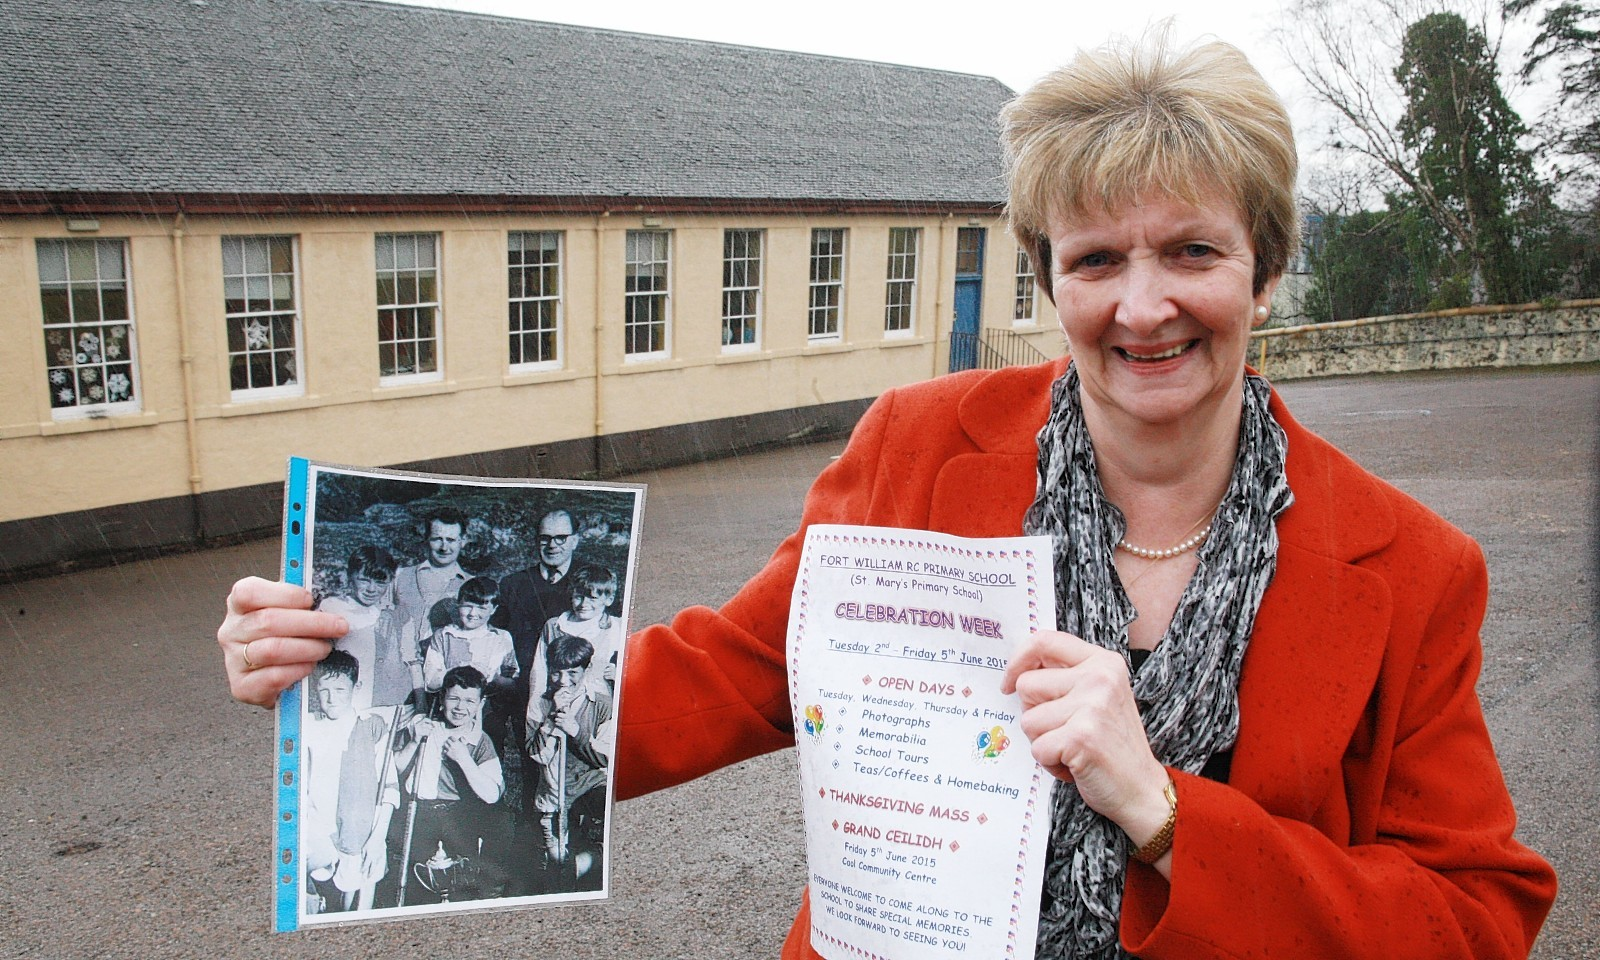 Violet Smith of Fort William RC Primary School is appealing to ex pupils and staff to join in a week to mark the school closing.